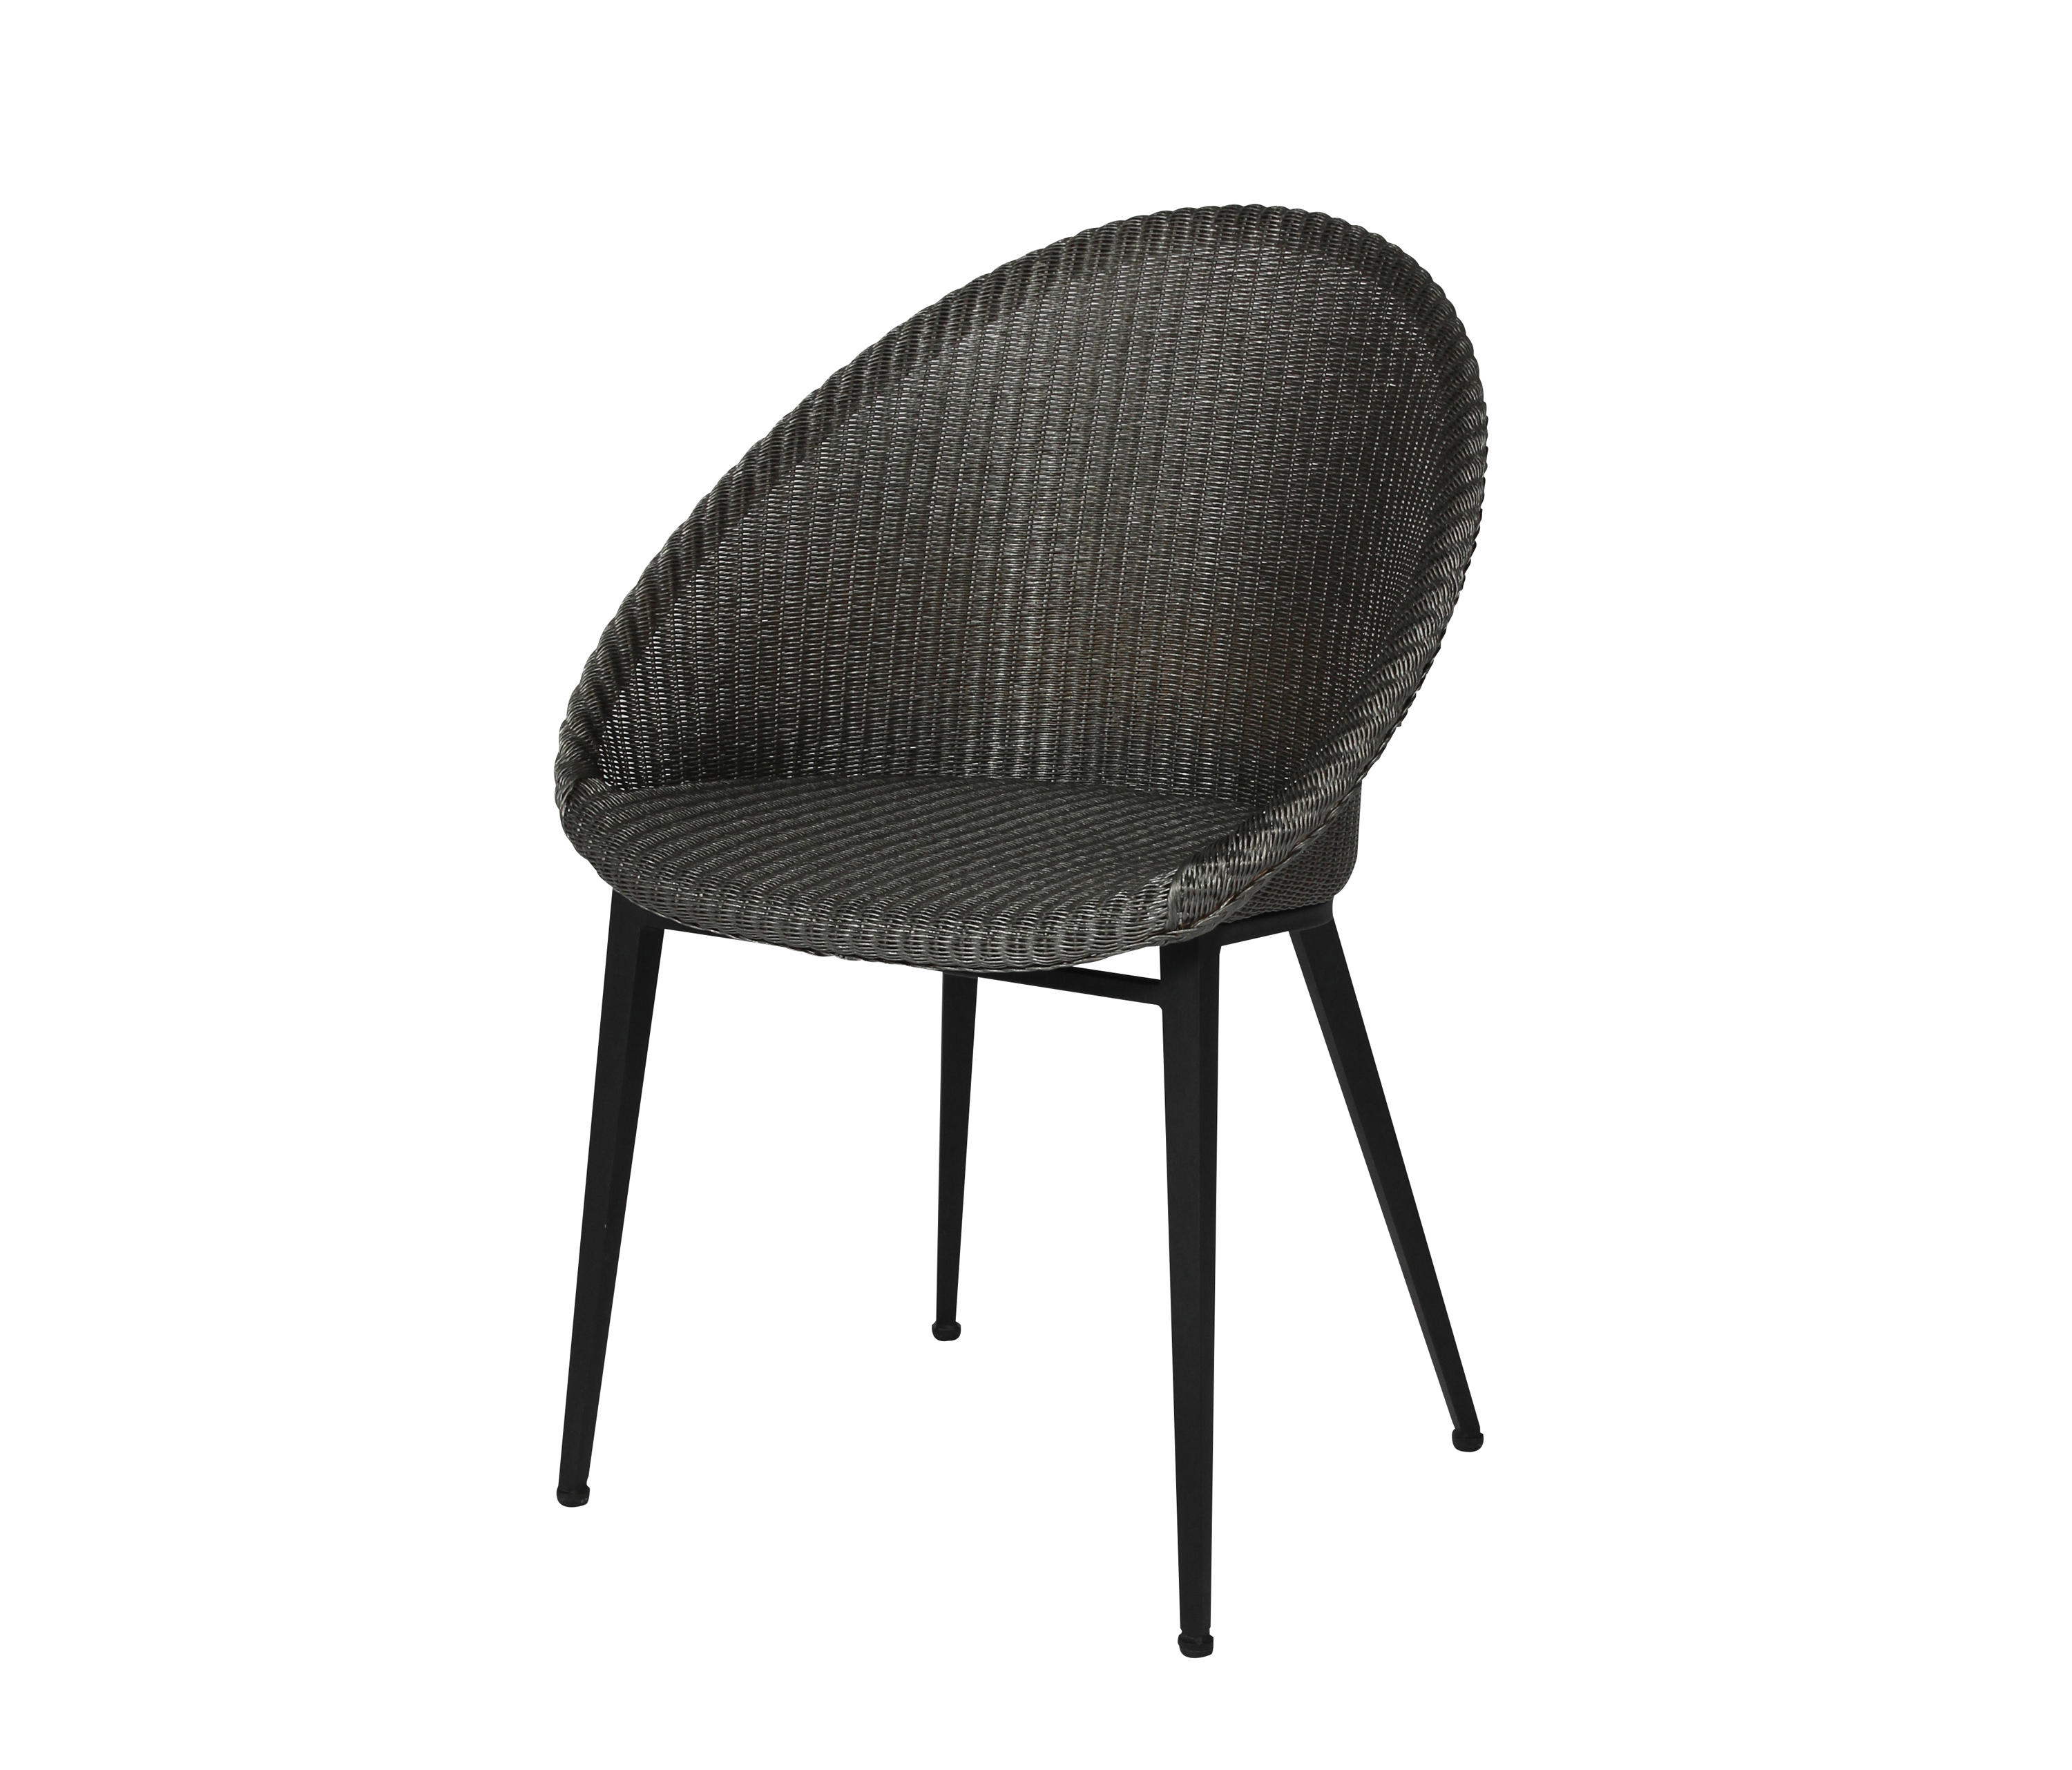 Joe   Jack Dining Chair By Vincent Sheppard | Chairs ...